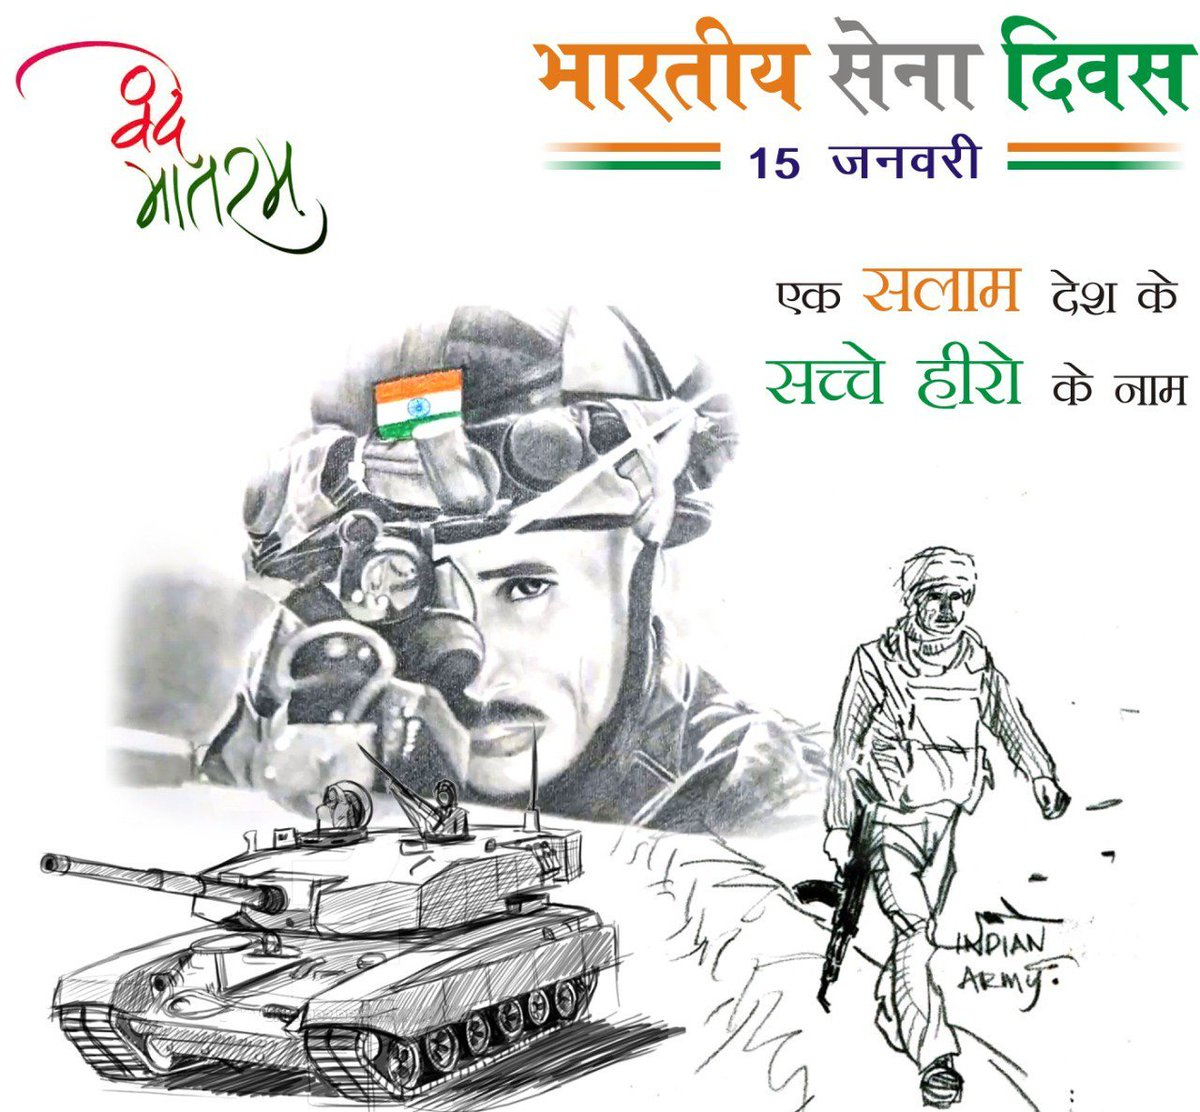 Army Day - 15 January  IMAGES, GIF, ANIMATED GIF, WALLPAPER, STICKER FOR WHATSAPP & FACEBOOK